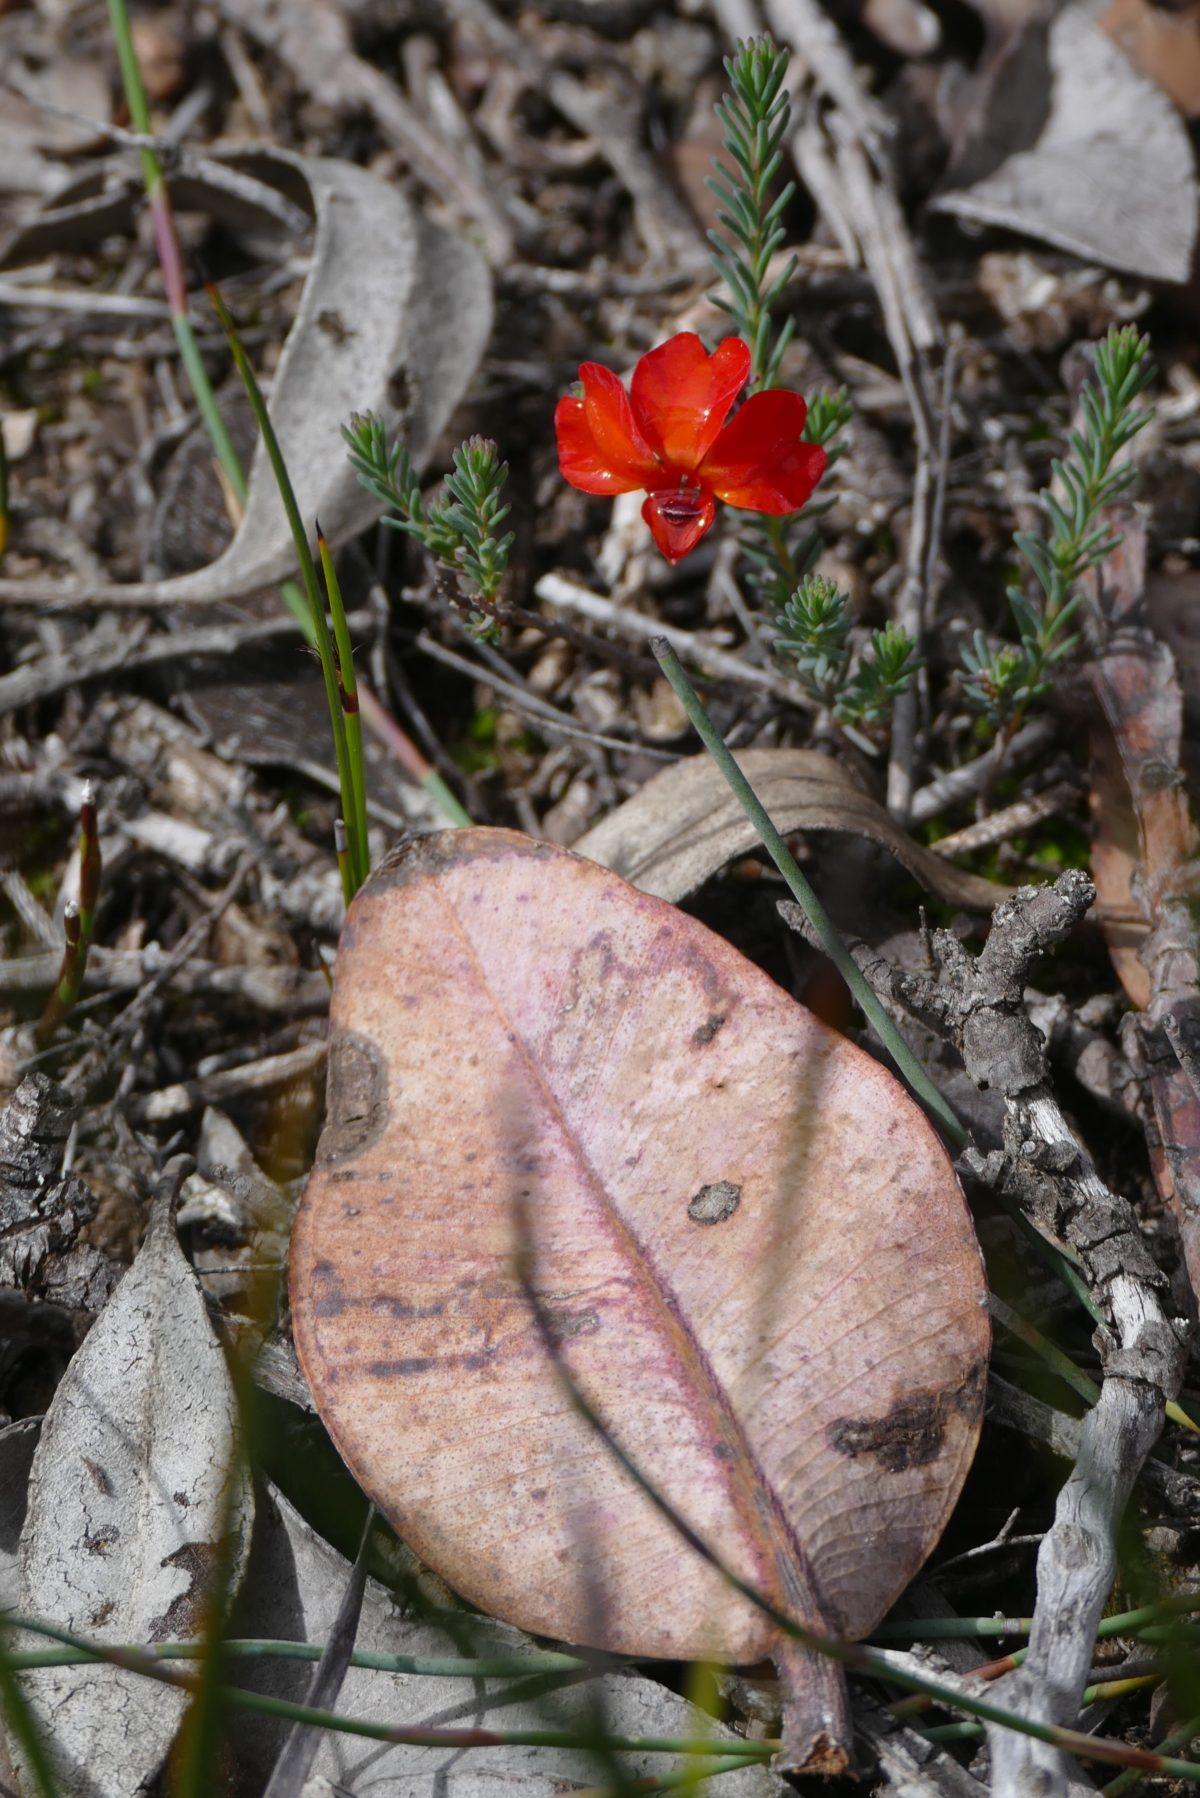 Red Leschenaultia and eucalypt leaves. All photos copyright Doug Spencer.